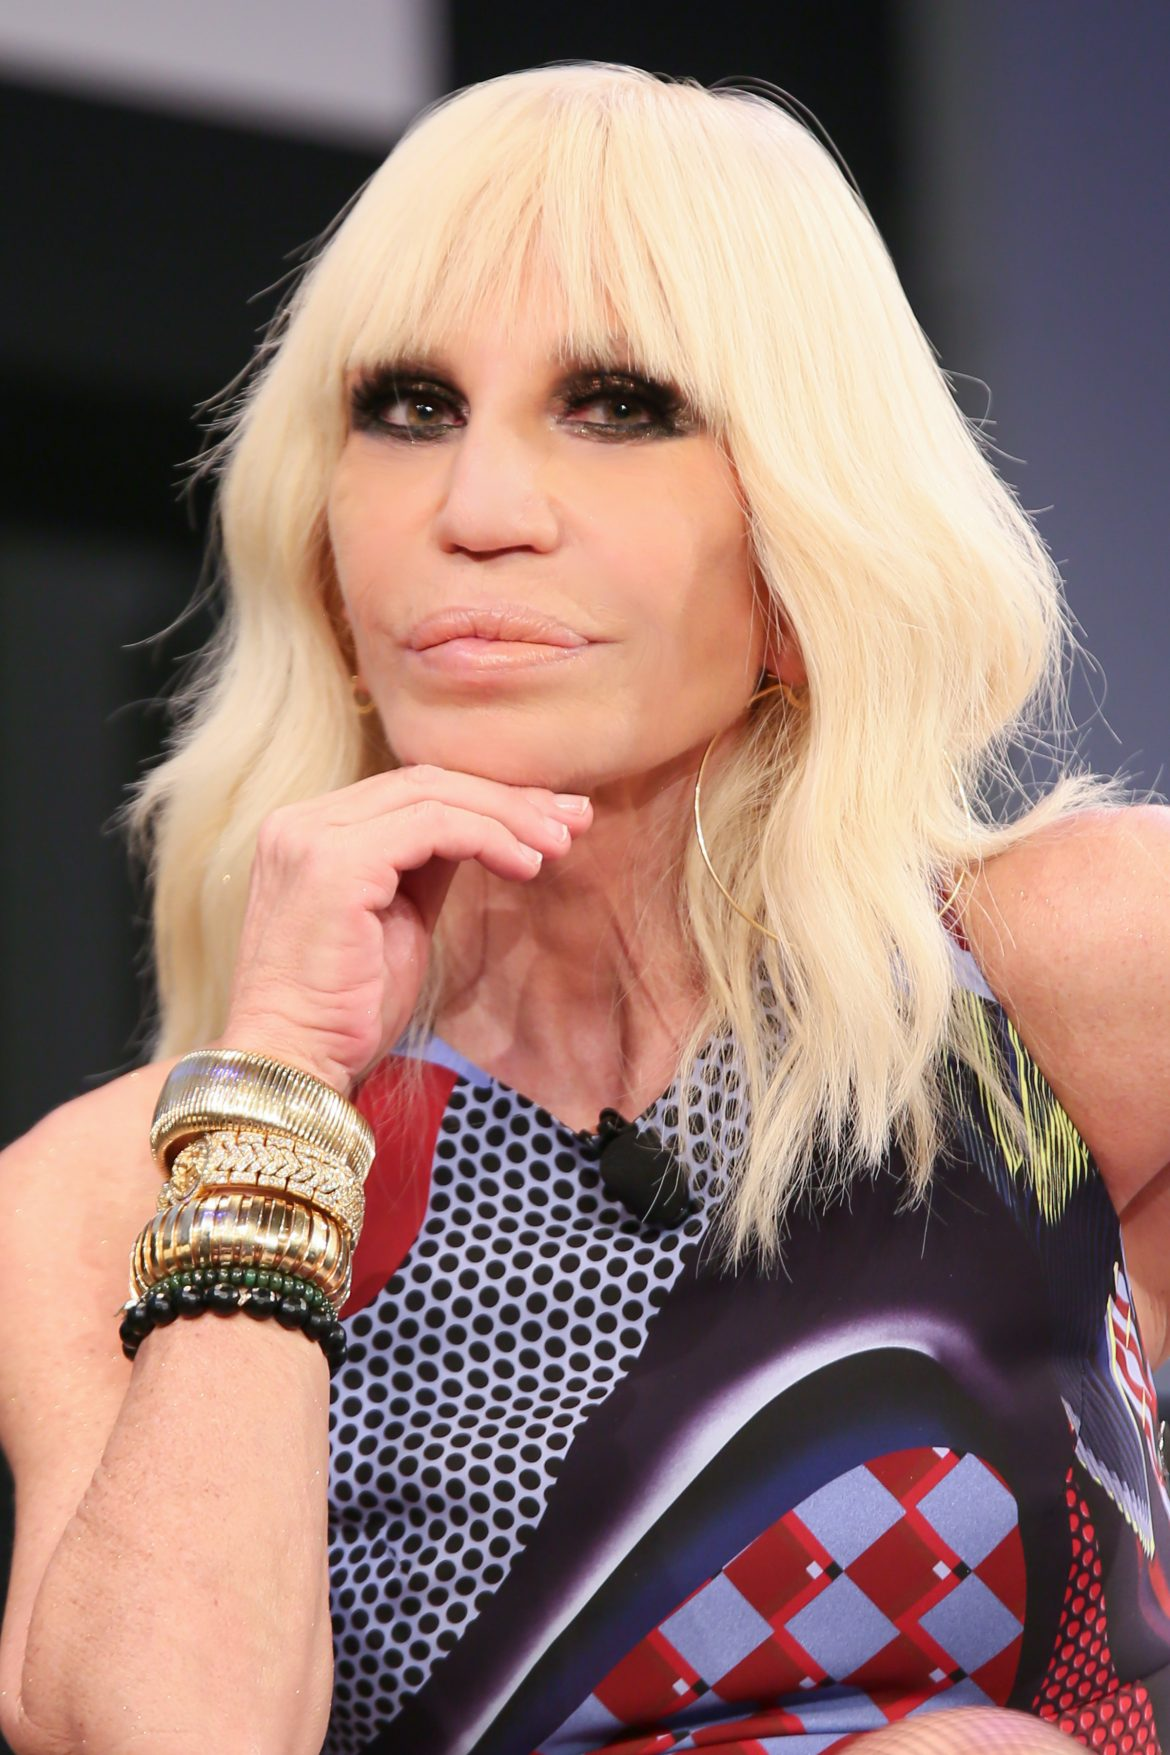 Donatella versace touts her new book daily front row for Donatella versace beach